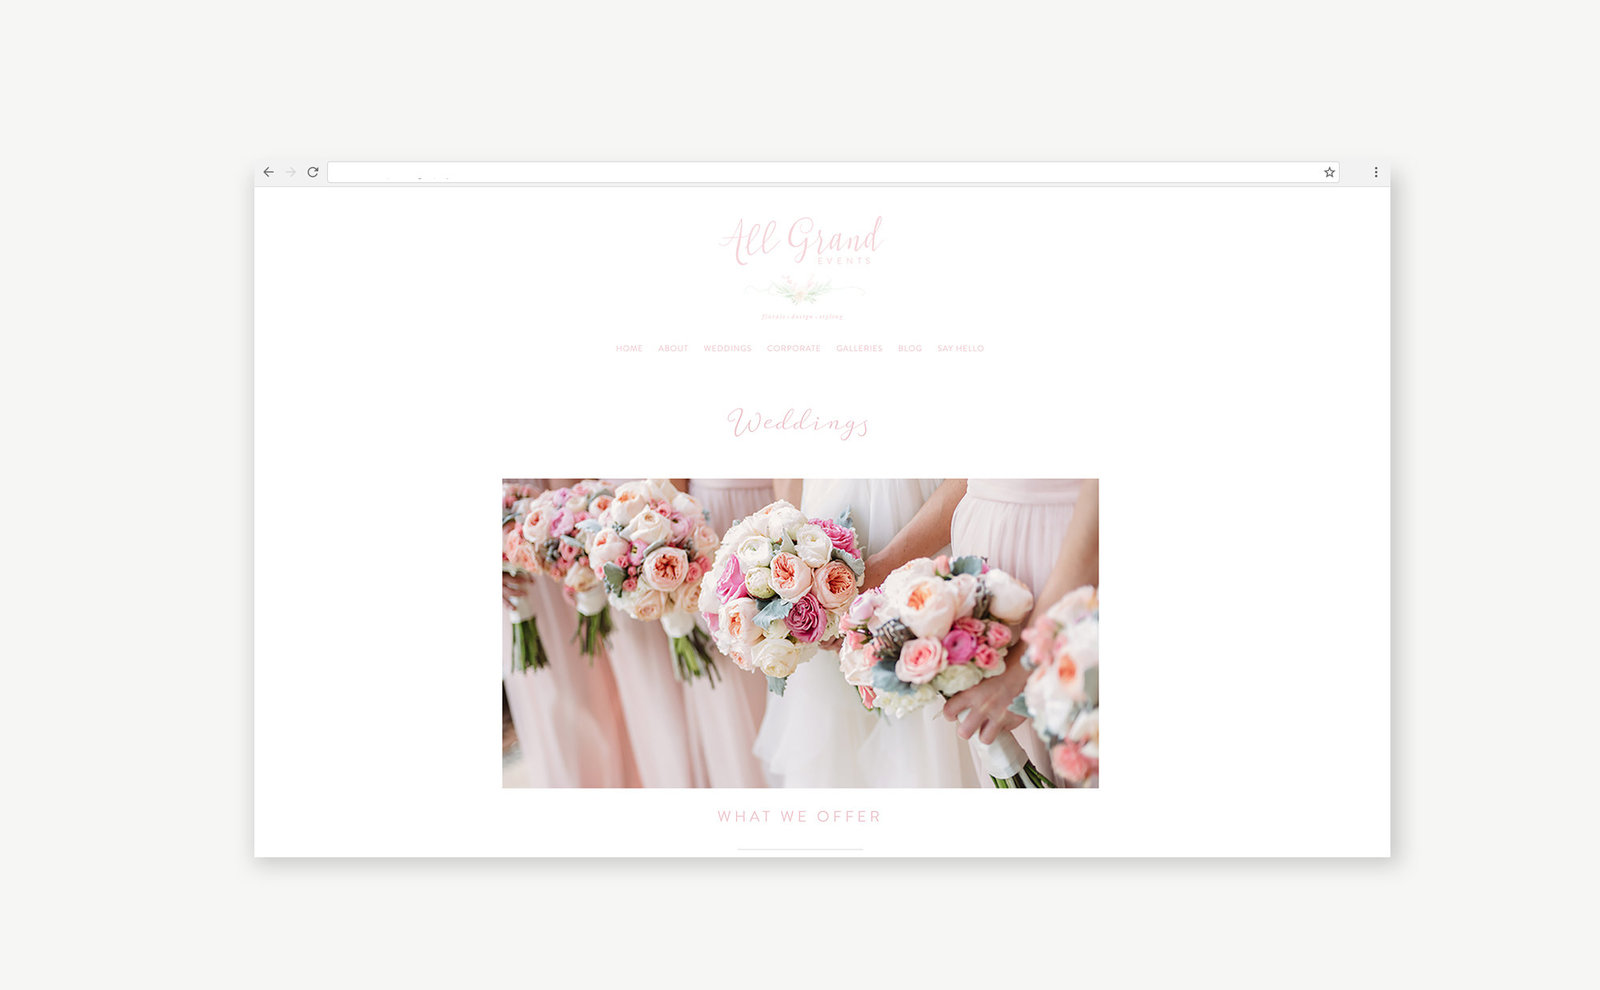 branding-for-florists-web-design-all-grand-events-03